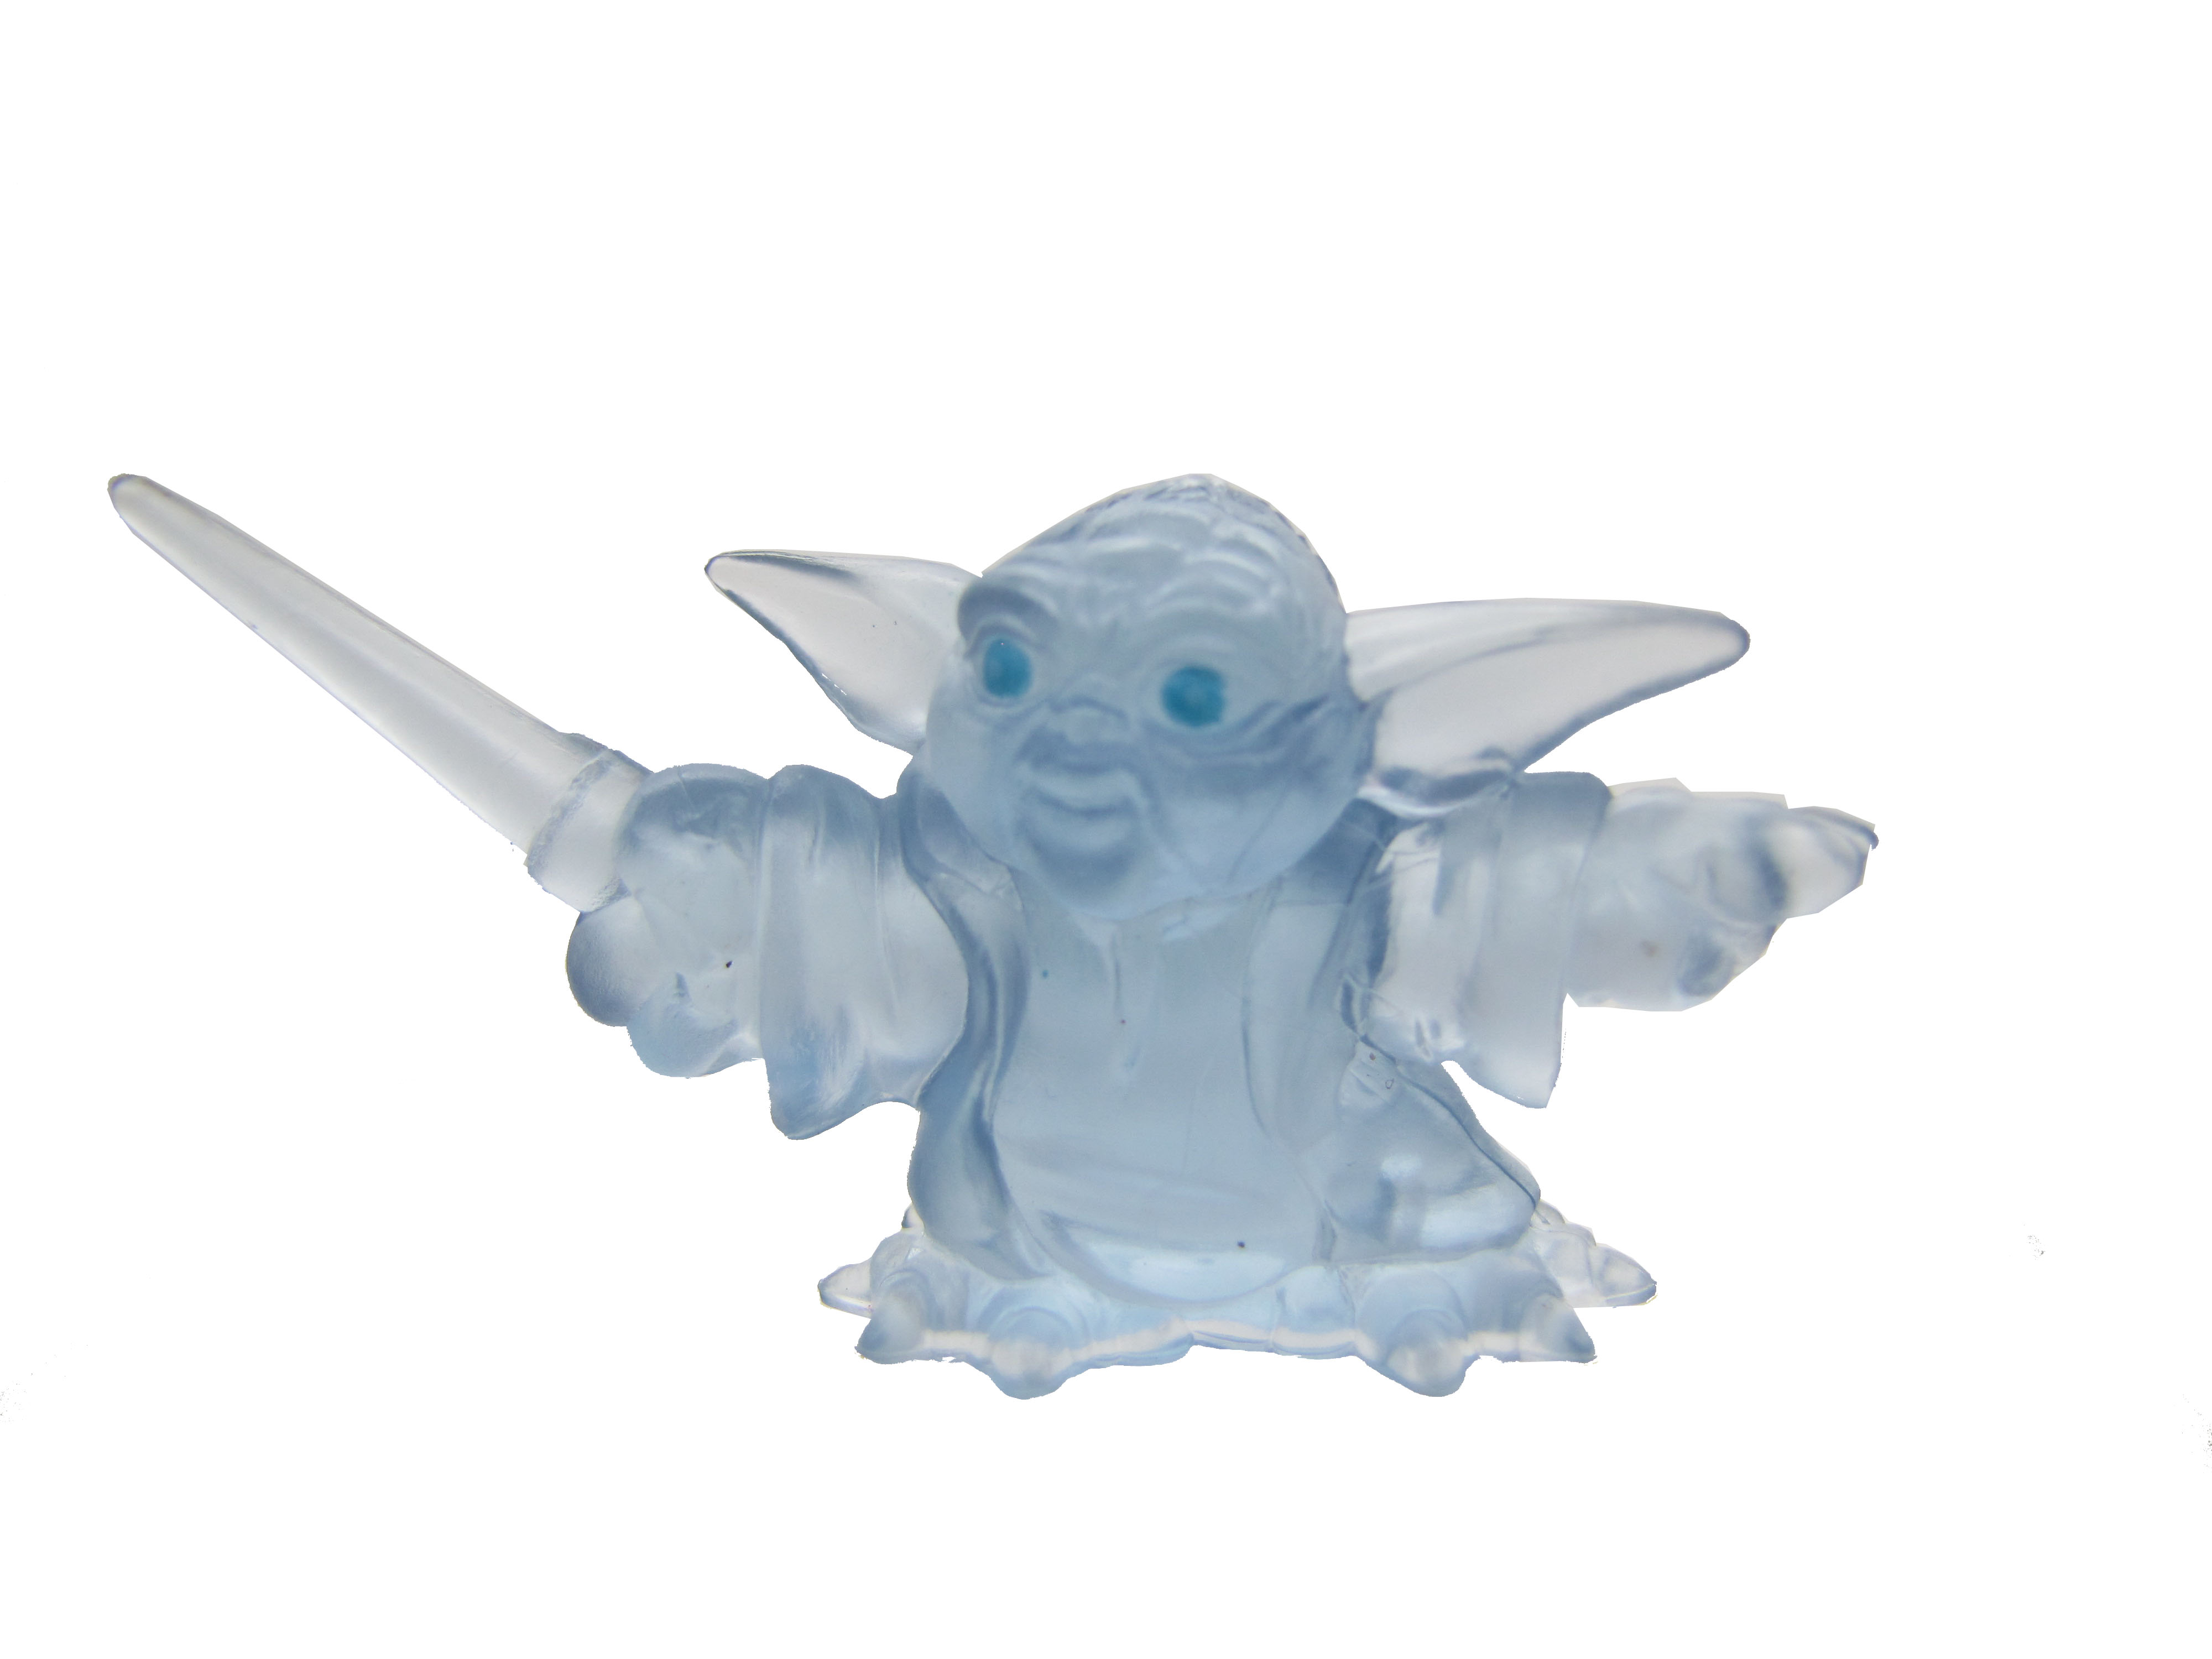 Star Wars Galactic Heroes ENDOR CELEBRATION SPIRIT OF YODA